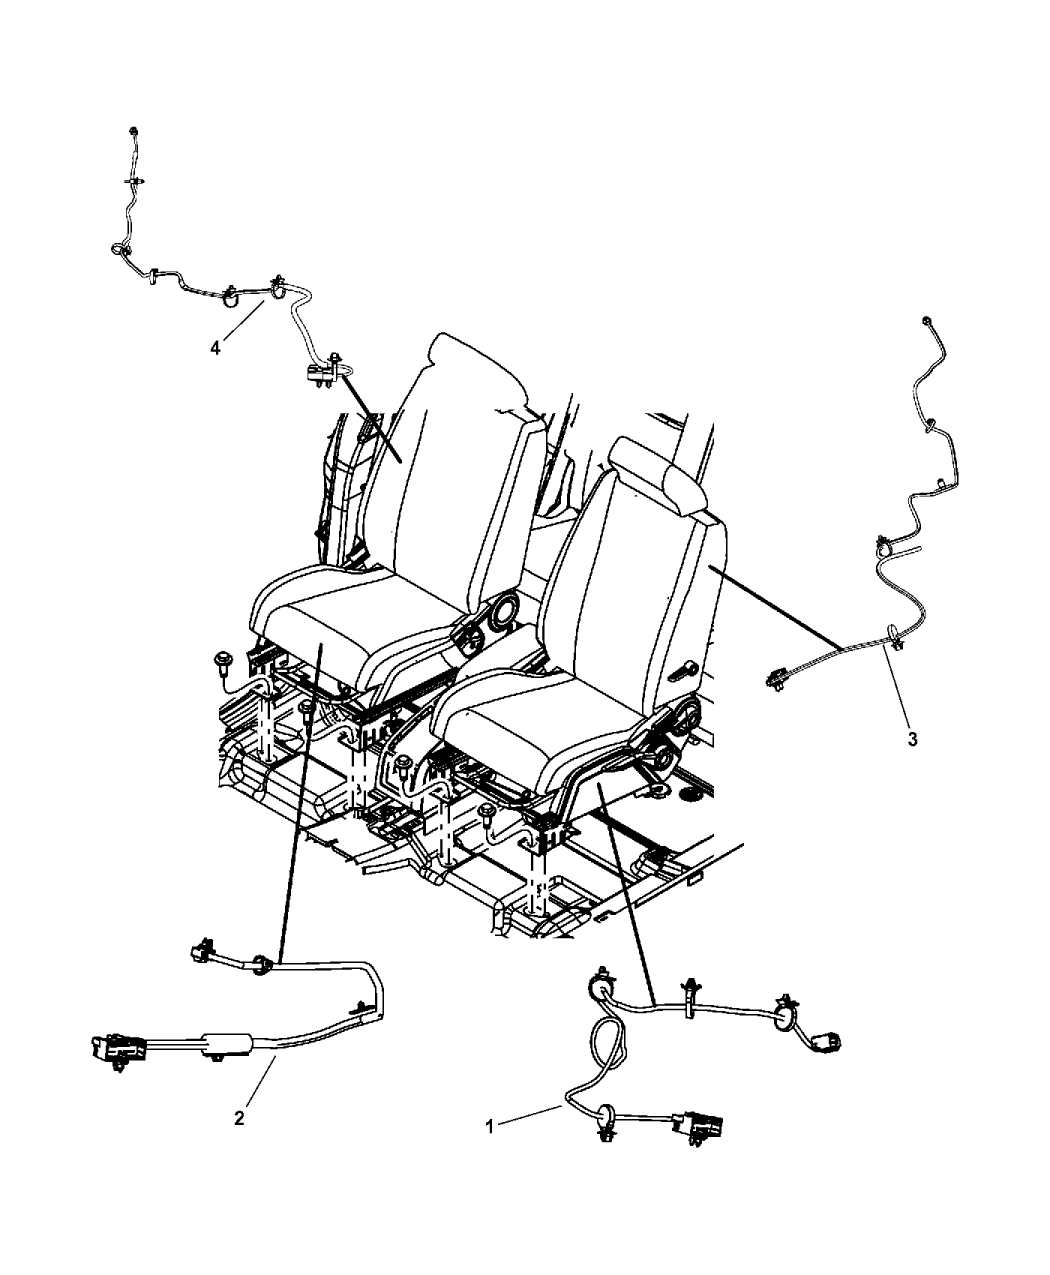 2009 Dodge Journey Wiring - Seats Front